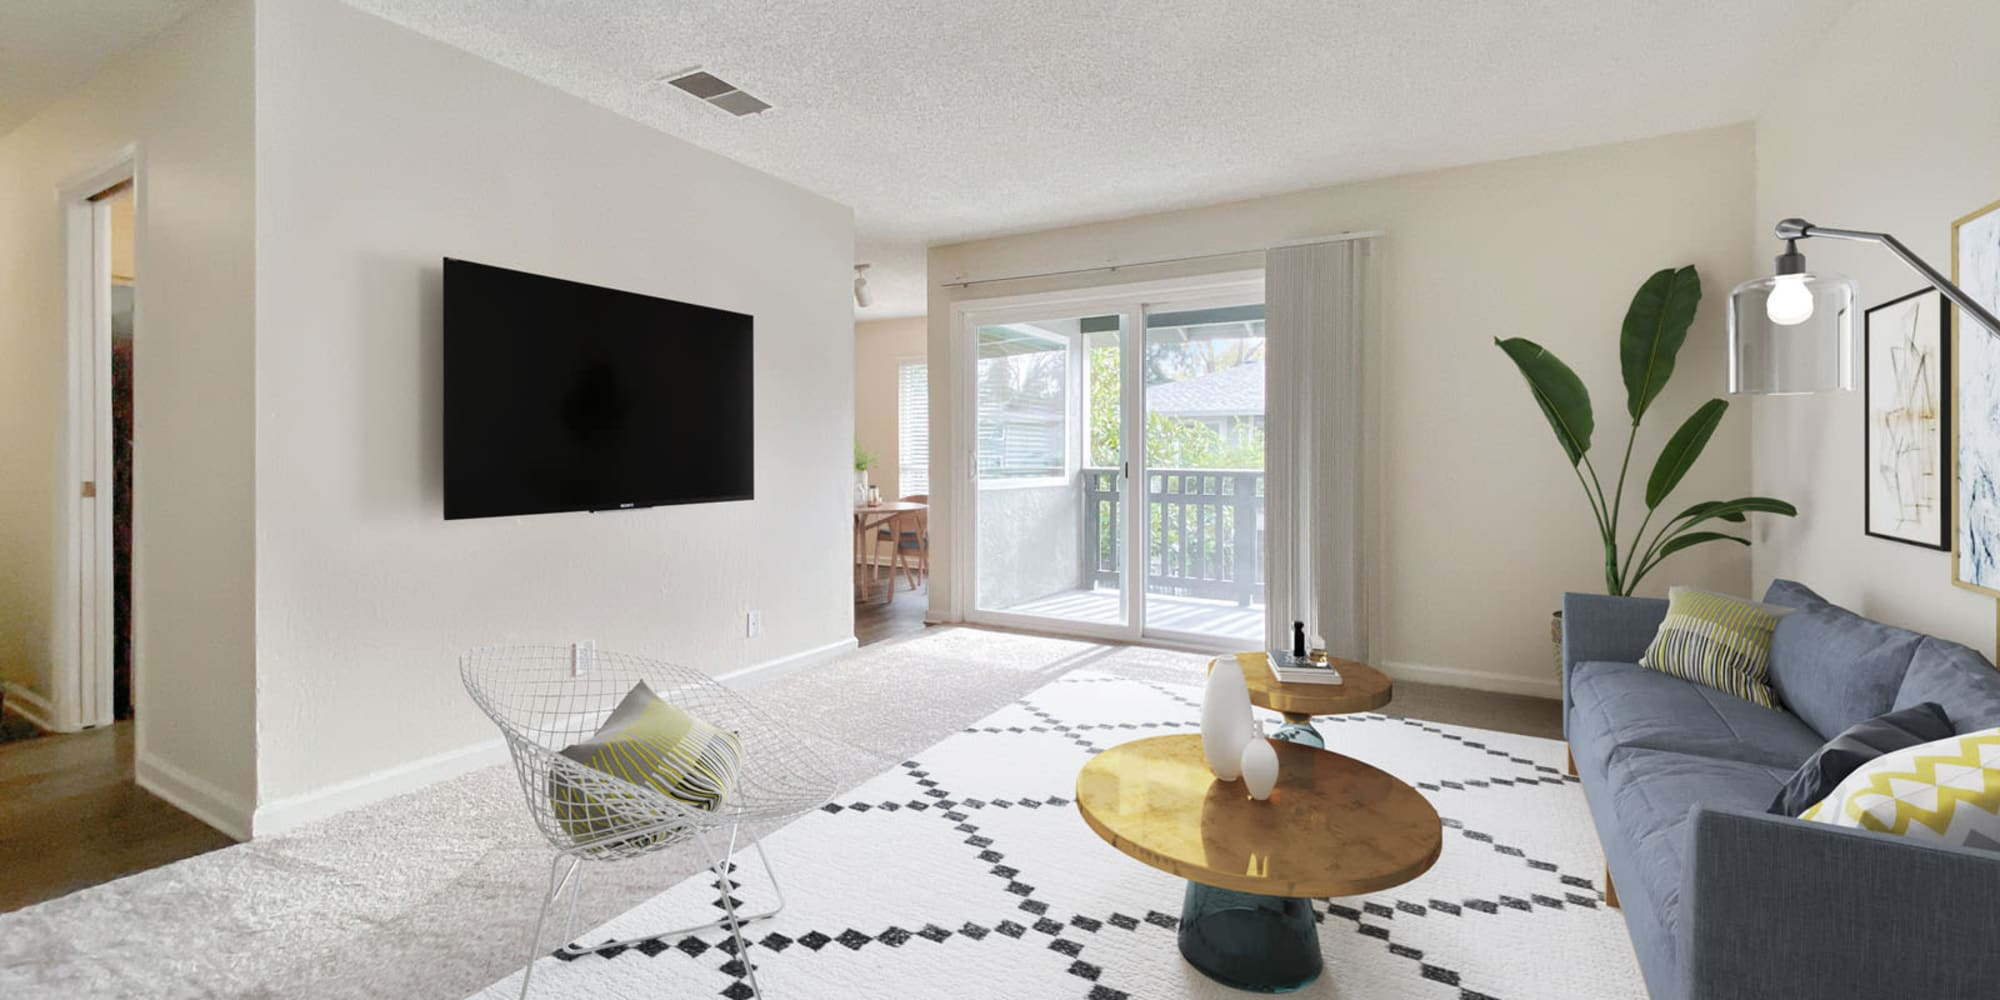 Modern furnishings and a wall-mounted flatscreen TV in a model apartment's living area at Pleasanton Glen Apartment Homes in Pleasanton, California